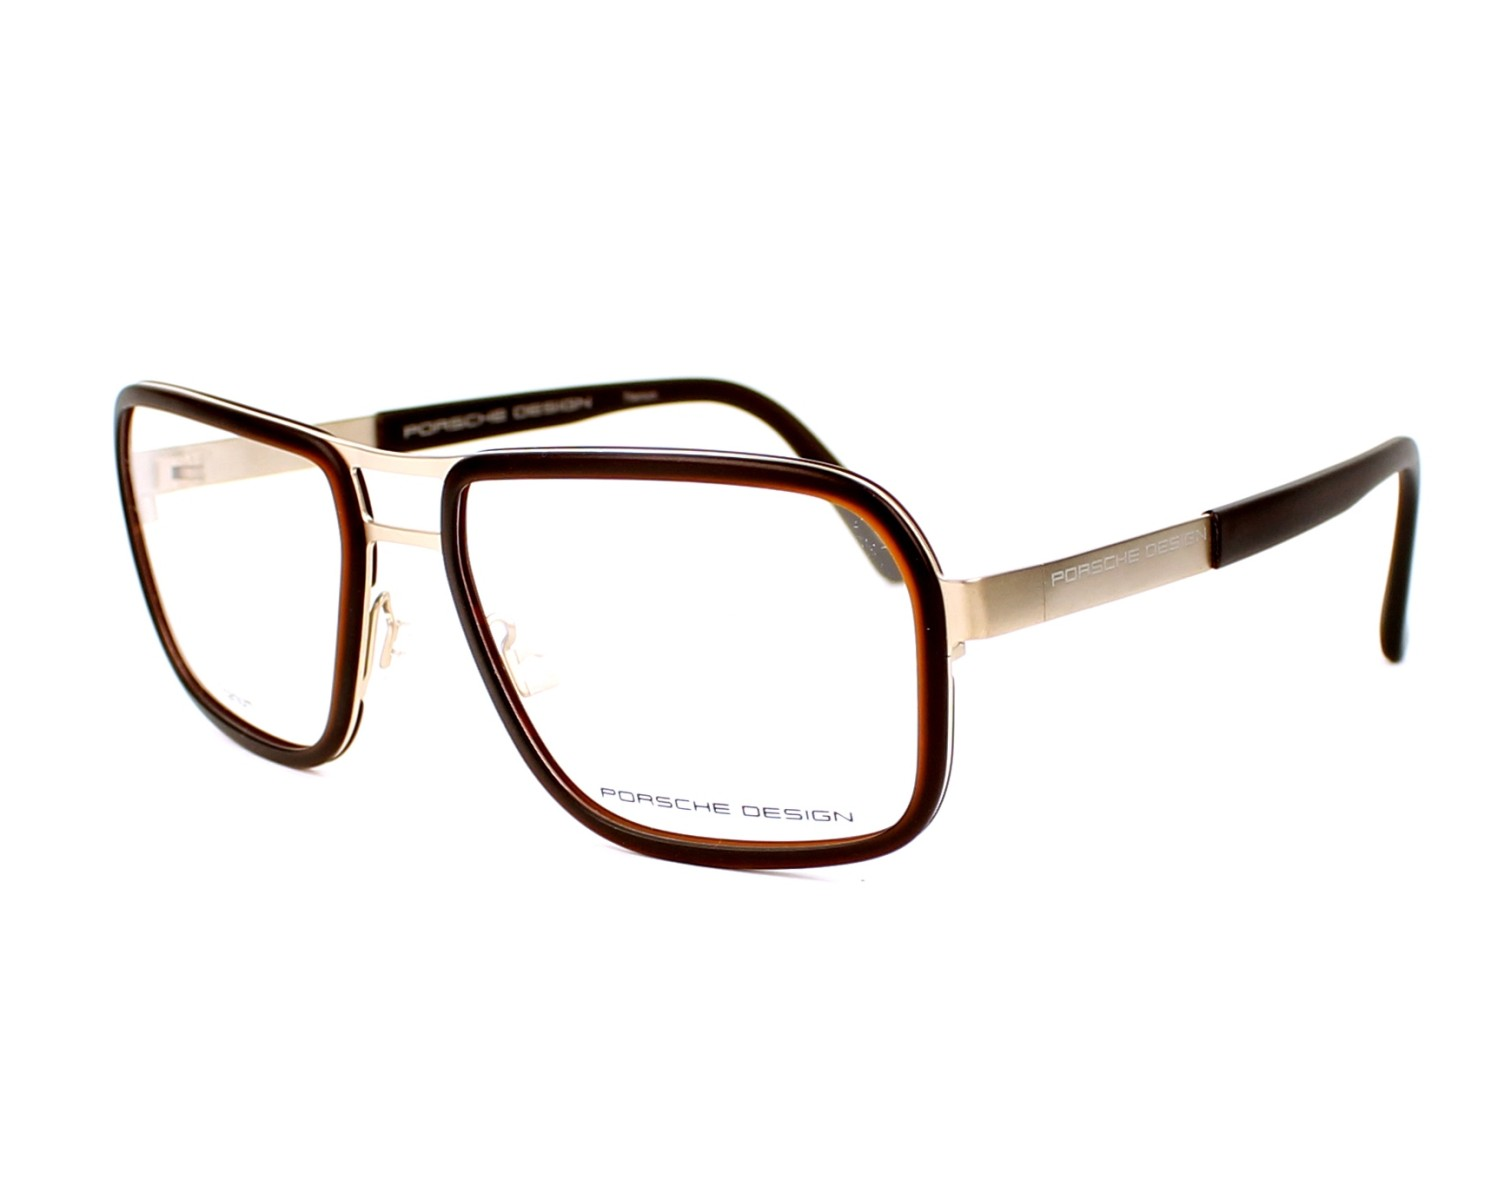 dc2e95adceeb0 eyeglasses Porsche Design P-8219 C - Gold Brown profile view